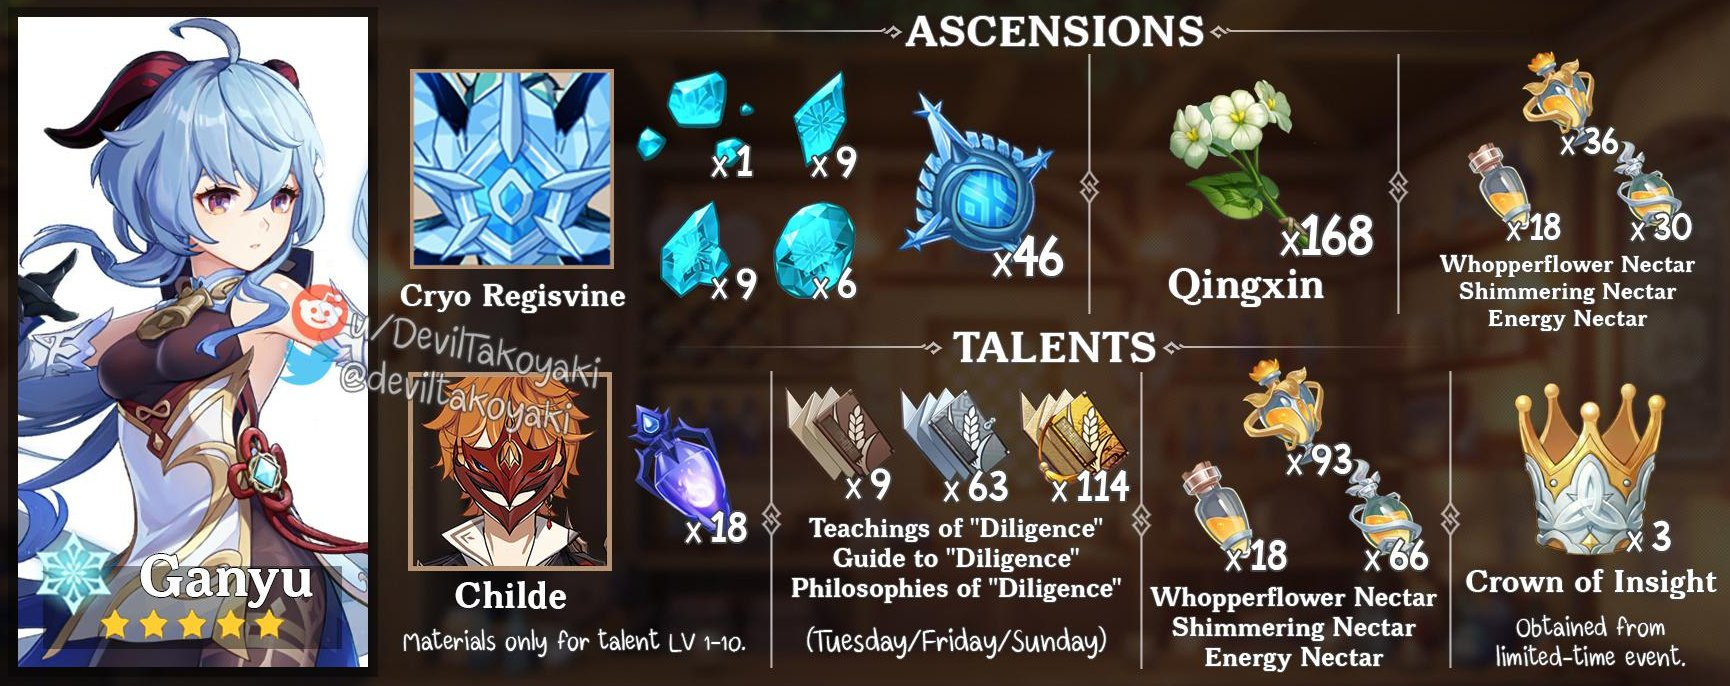 Genshin Impact Ganyu Ascension Guide